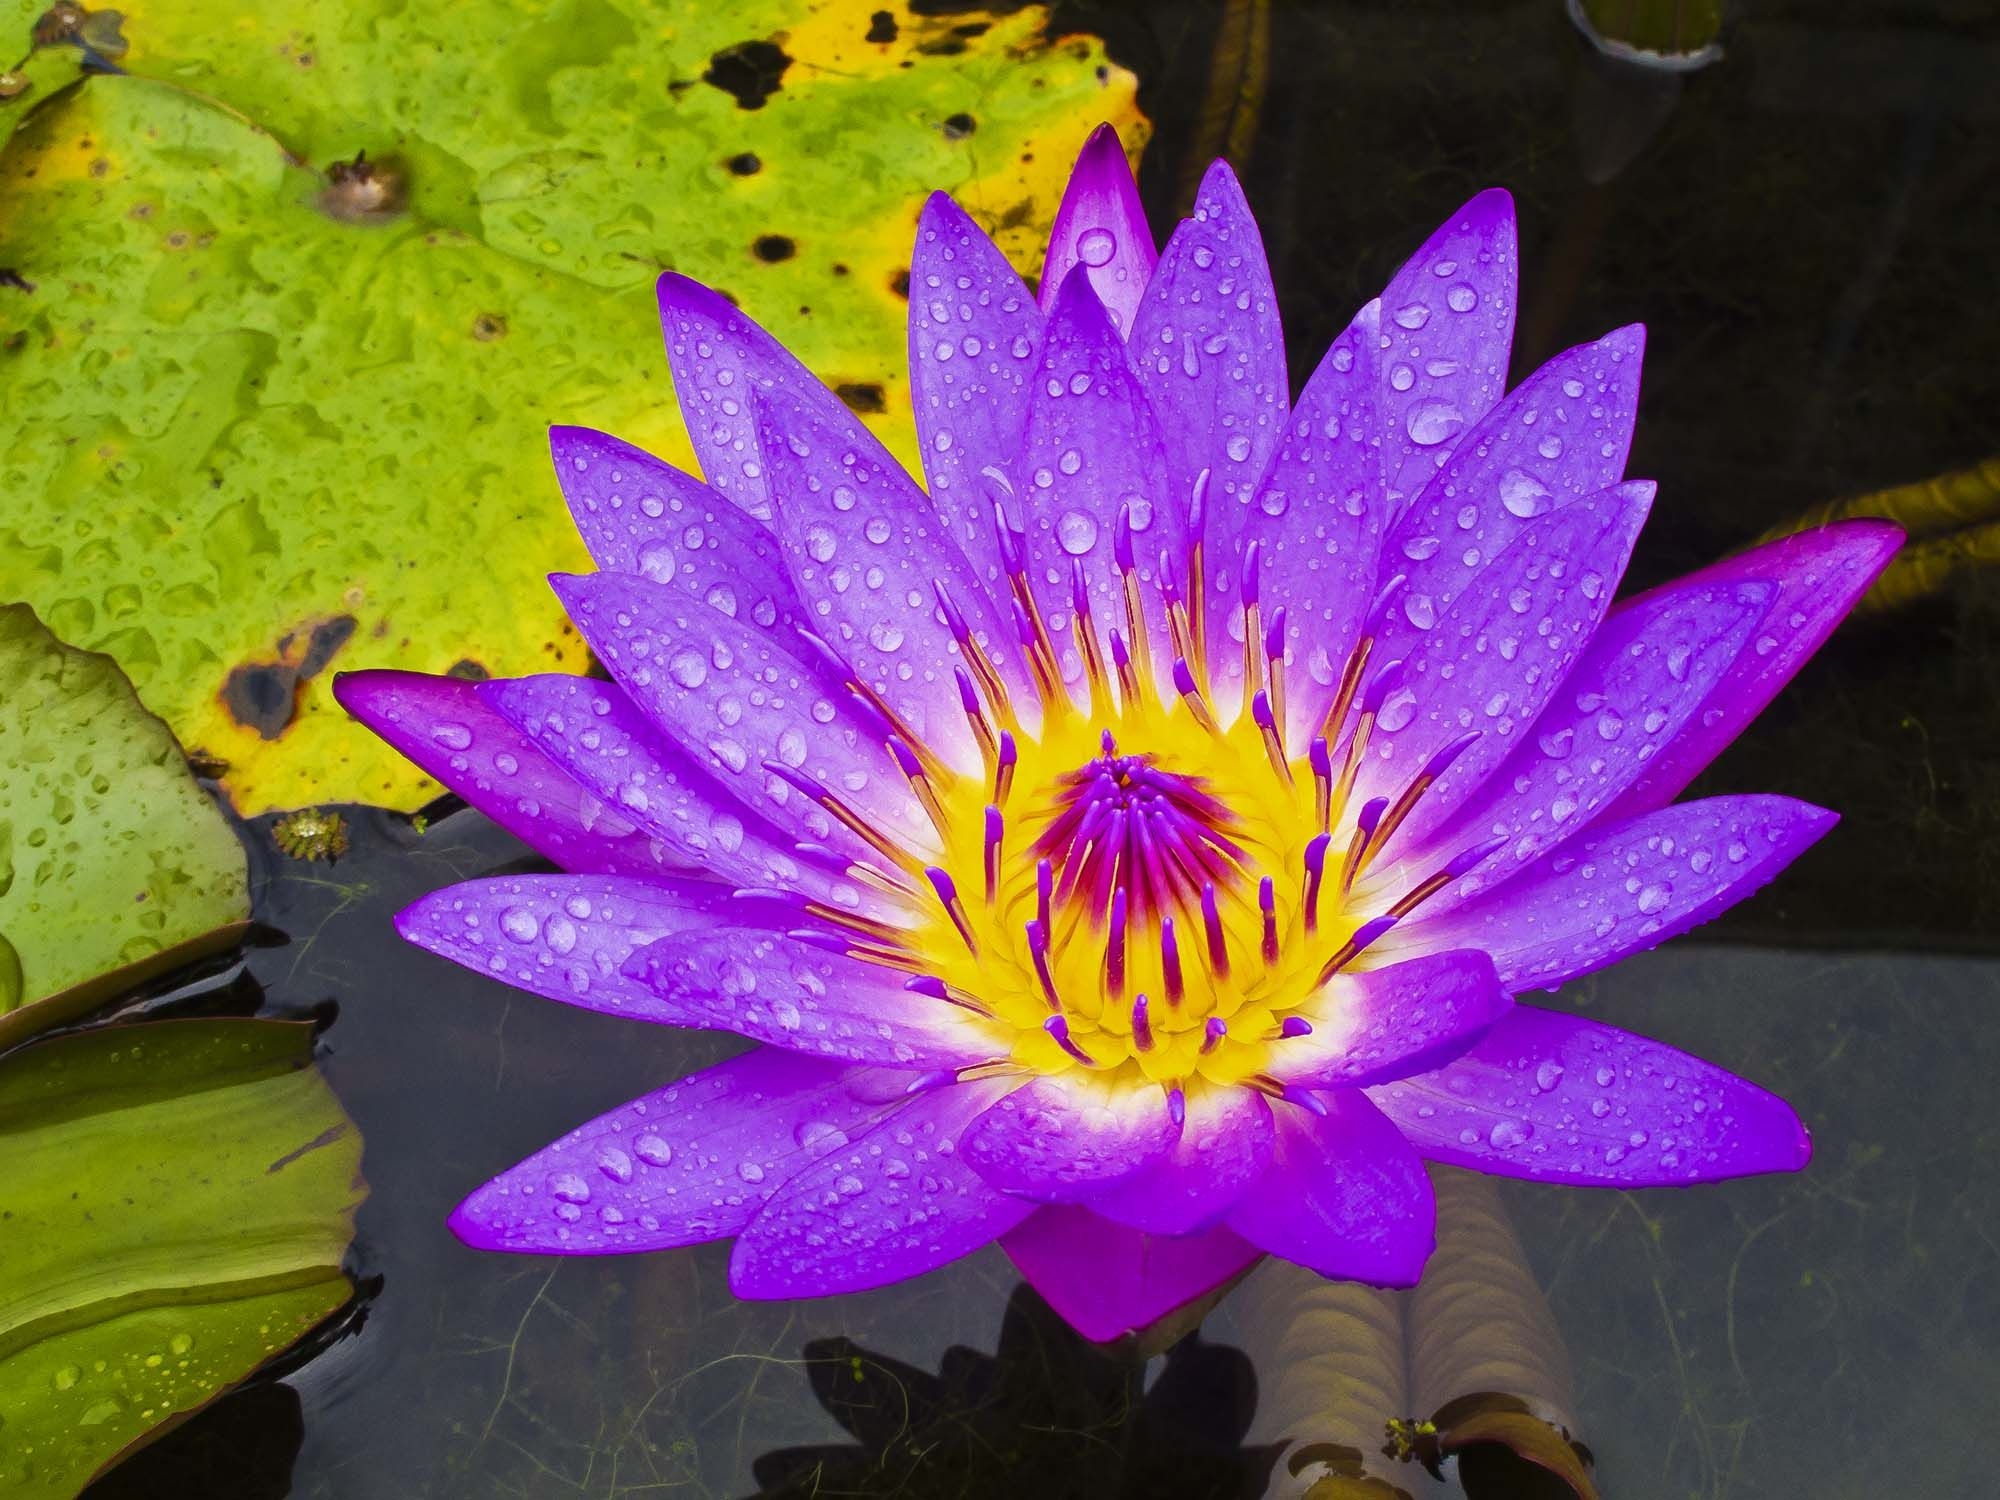 I want a water lily tattooed for each of my girls both july babys for my water lily tattoo july birth month flower izmirmasajfo Gallery